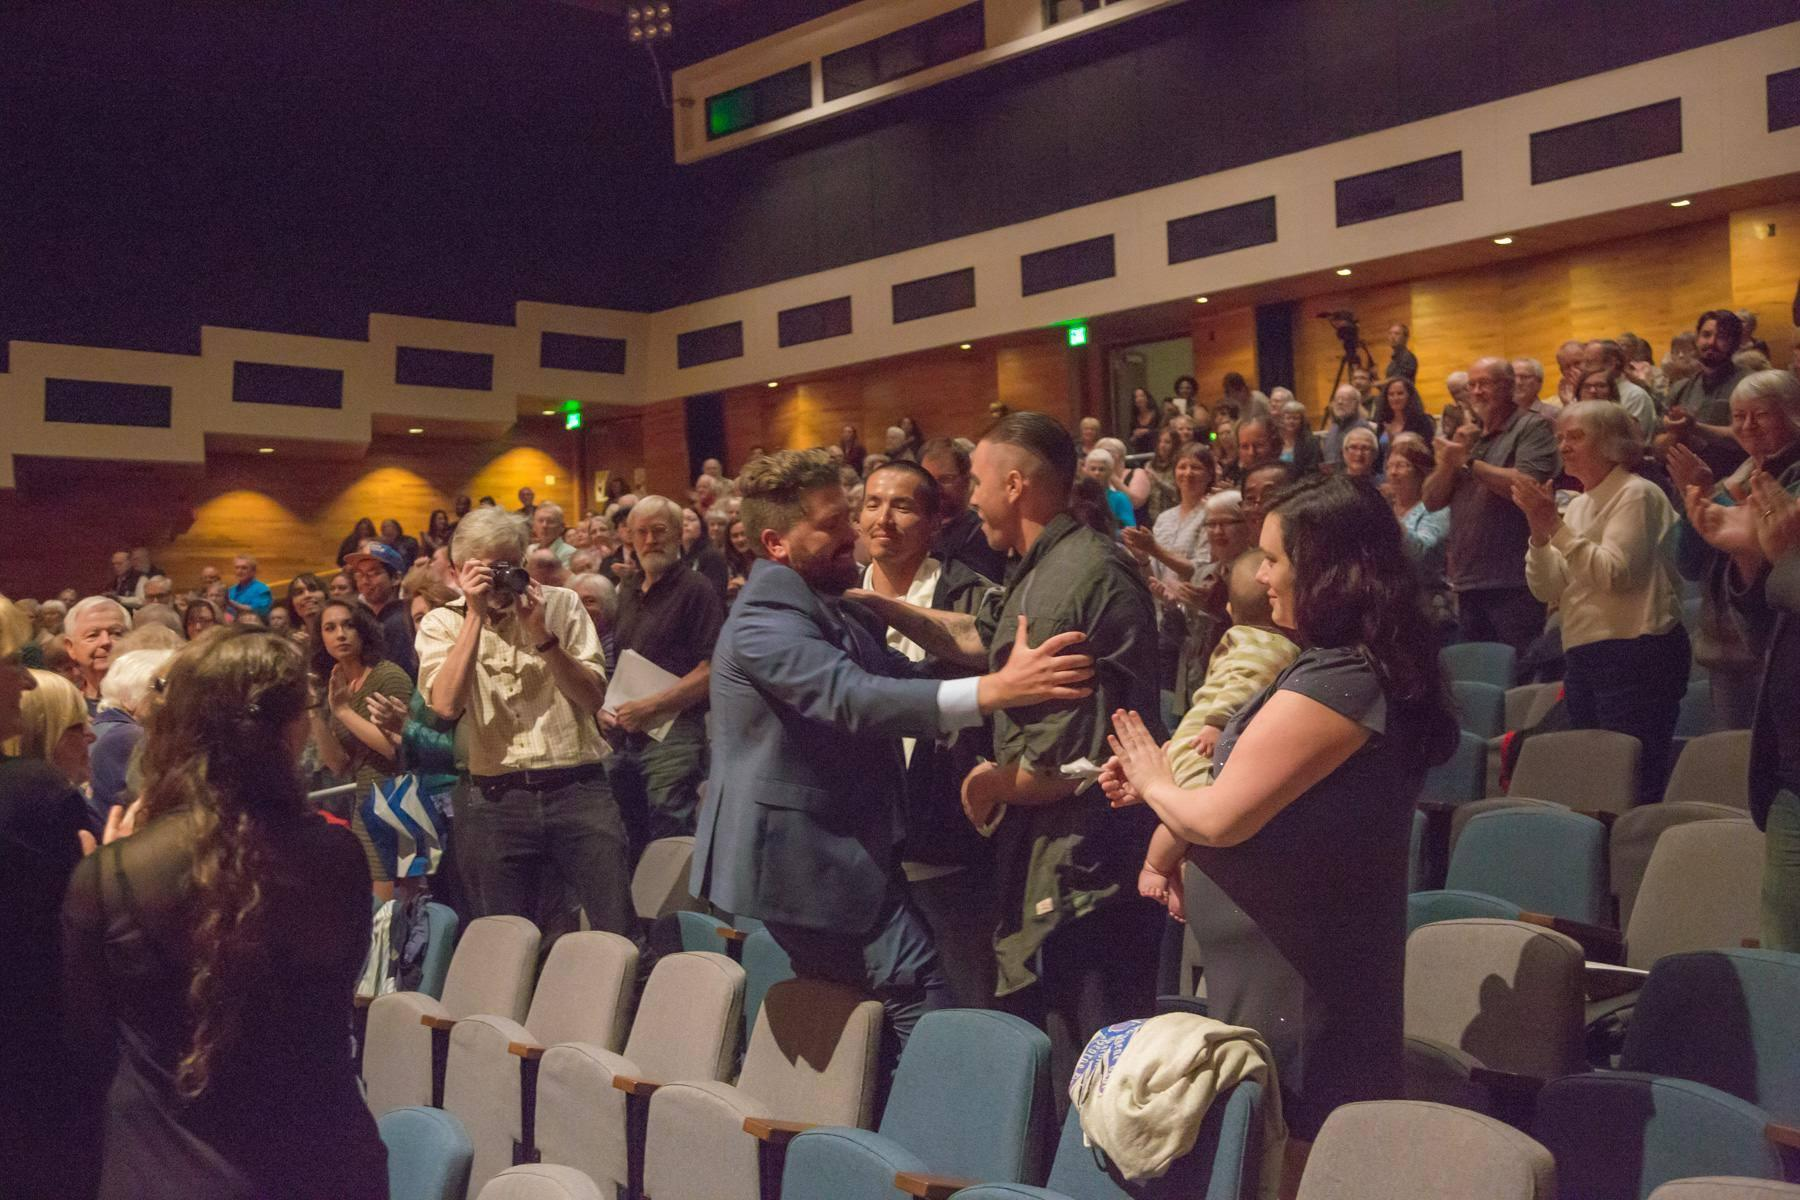 """Emerson Eads greets the Fairbanks Four and their family members after the """"Mass for the Oppressed"""" world premiere. (Photo courtesy of UAF)"""